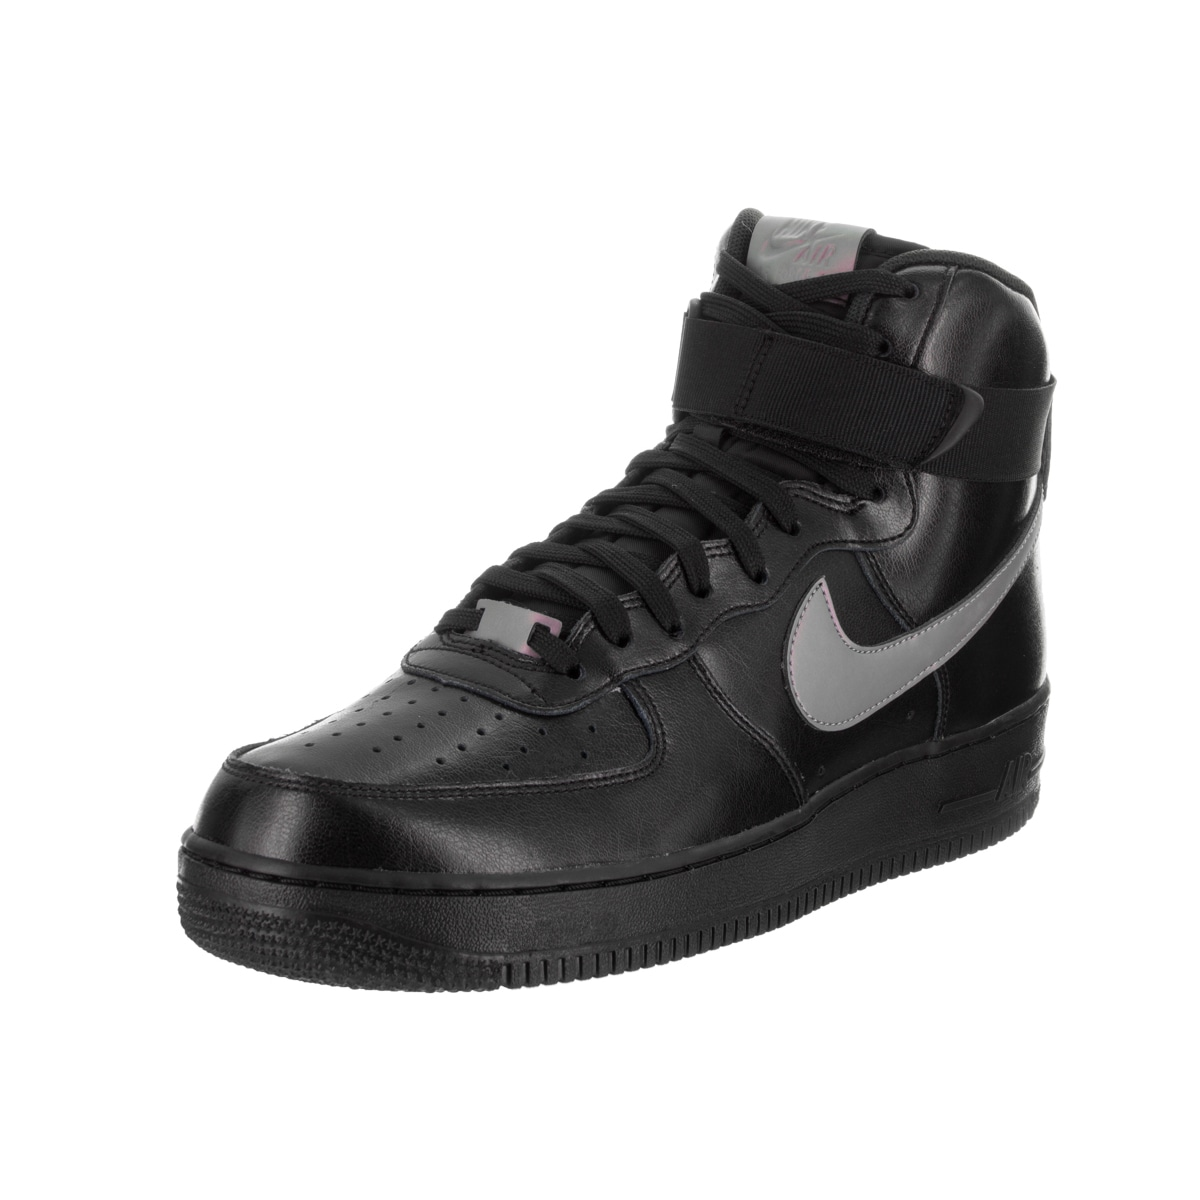 Nike Men's Air Force 1 High '07 LV8 Black Synthetic Leath...